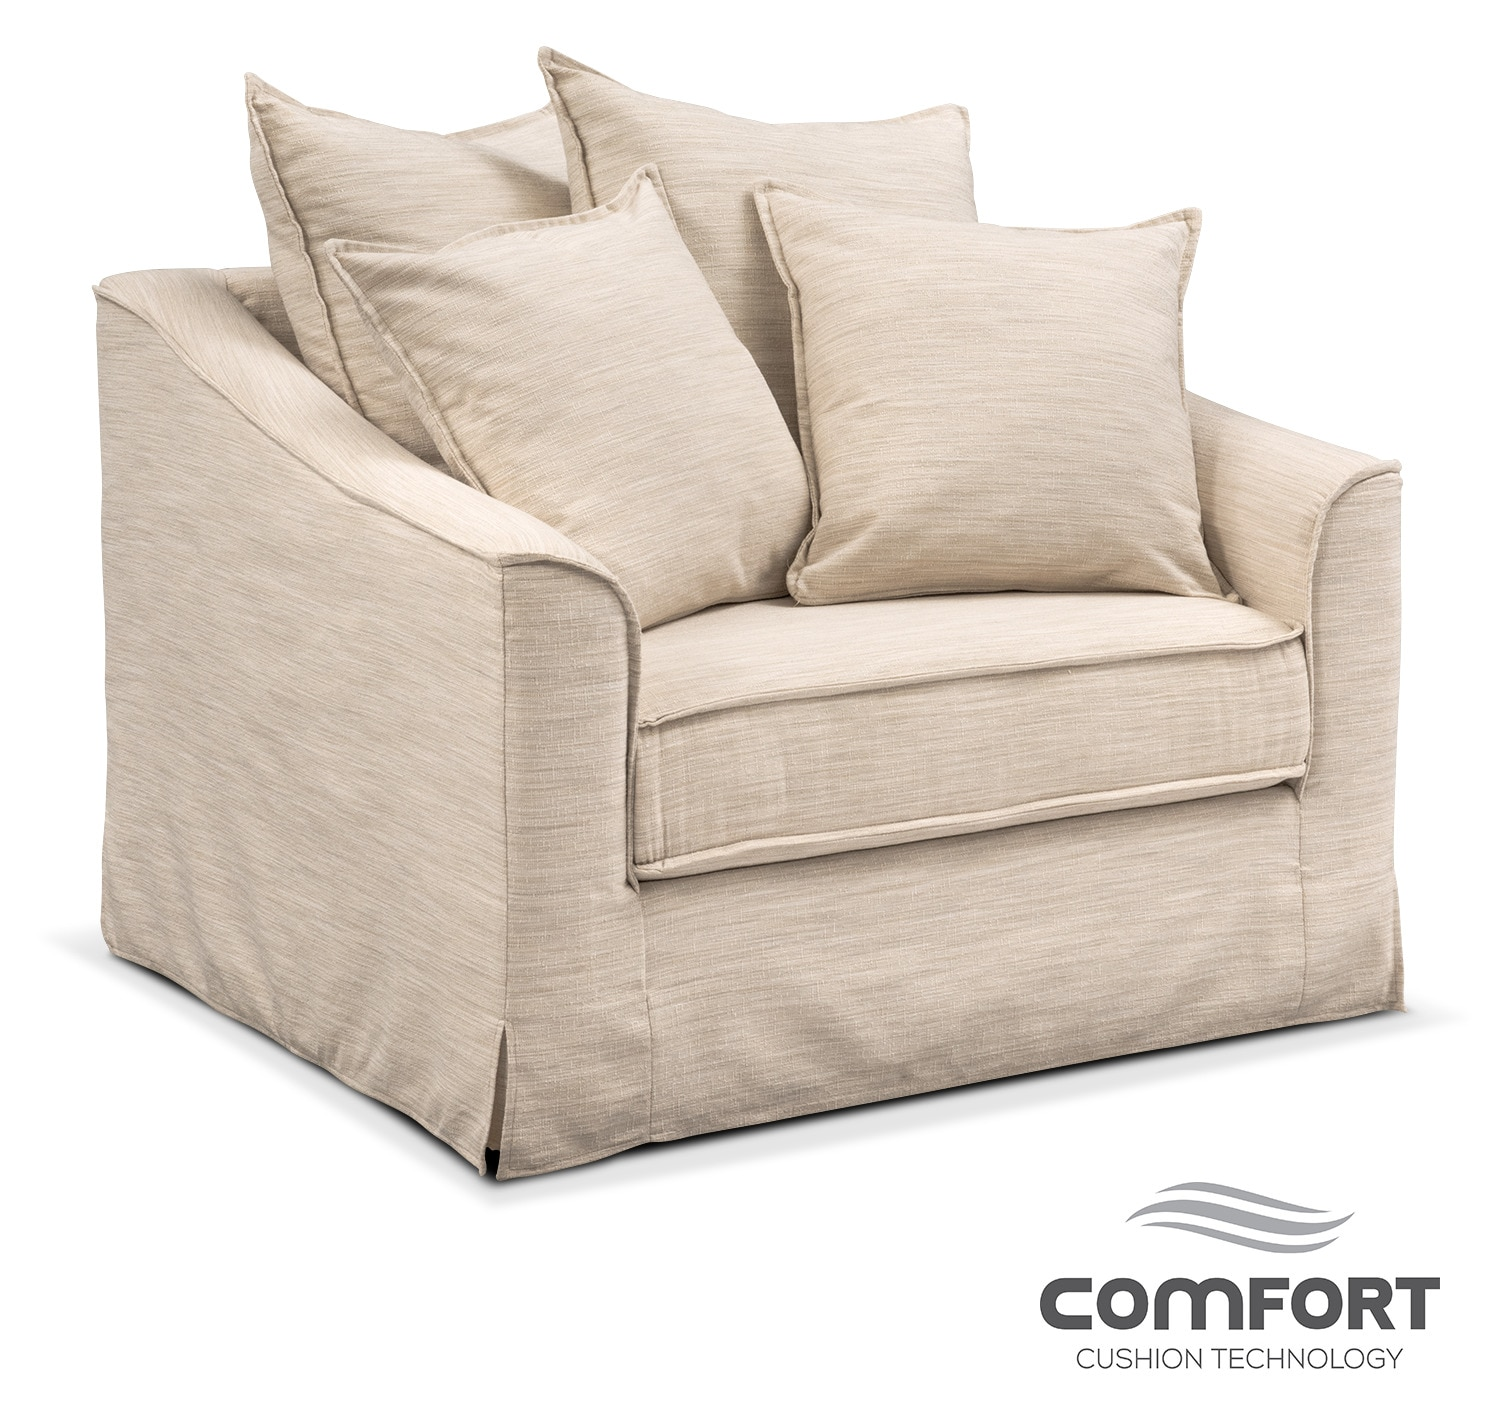 Living Room Furniture - Brooke Comfort Chair and a Half - Ivory